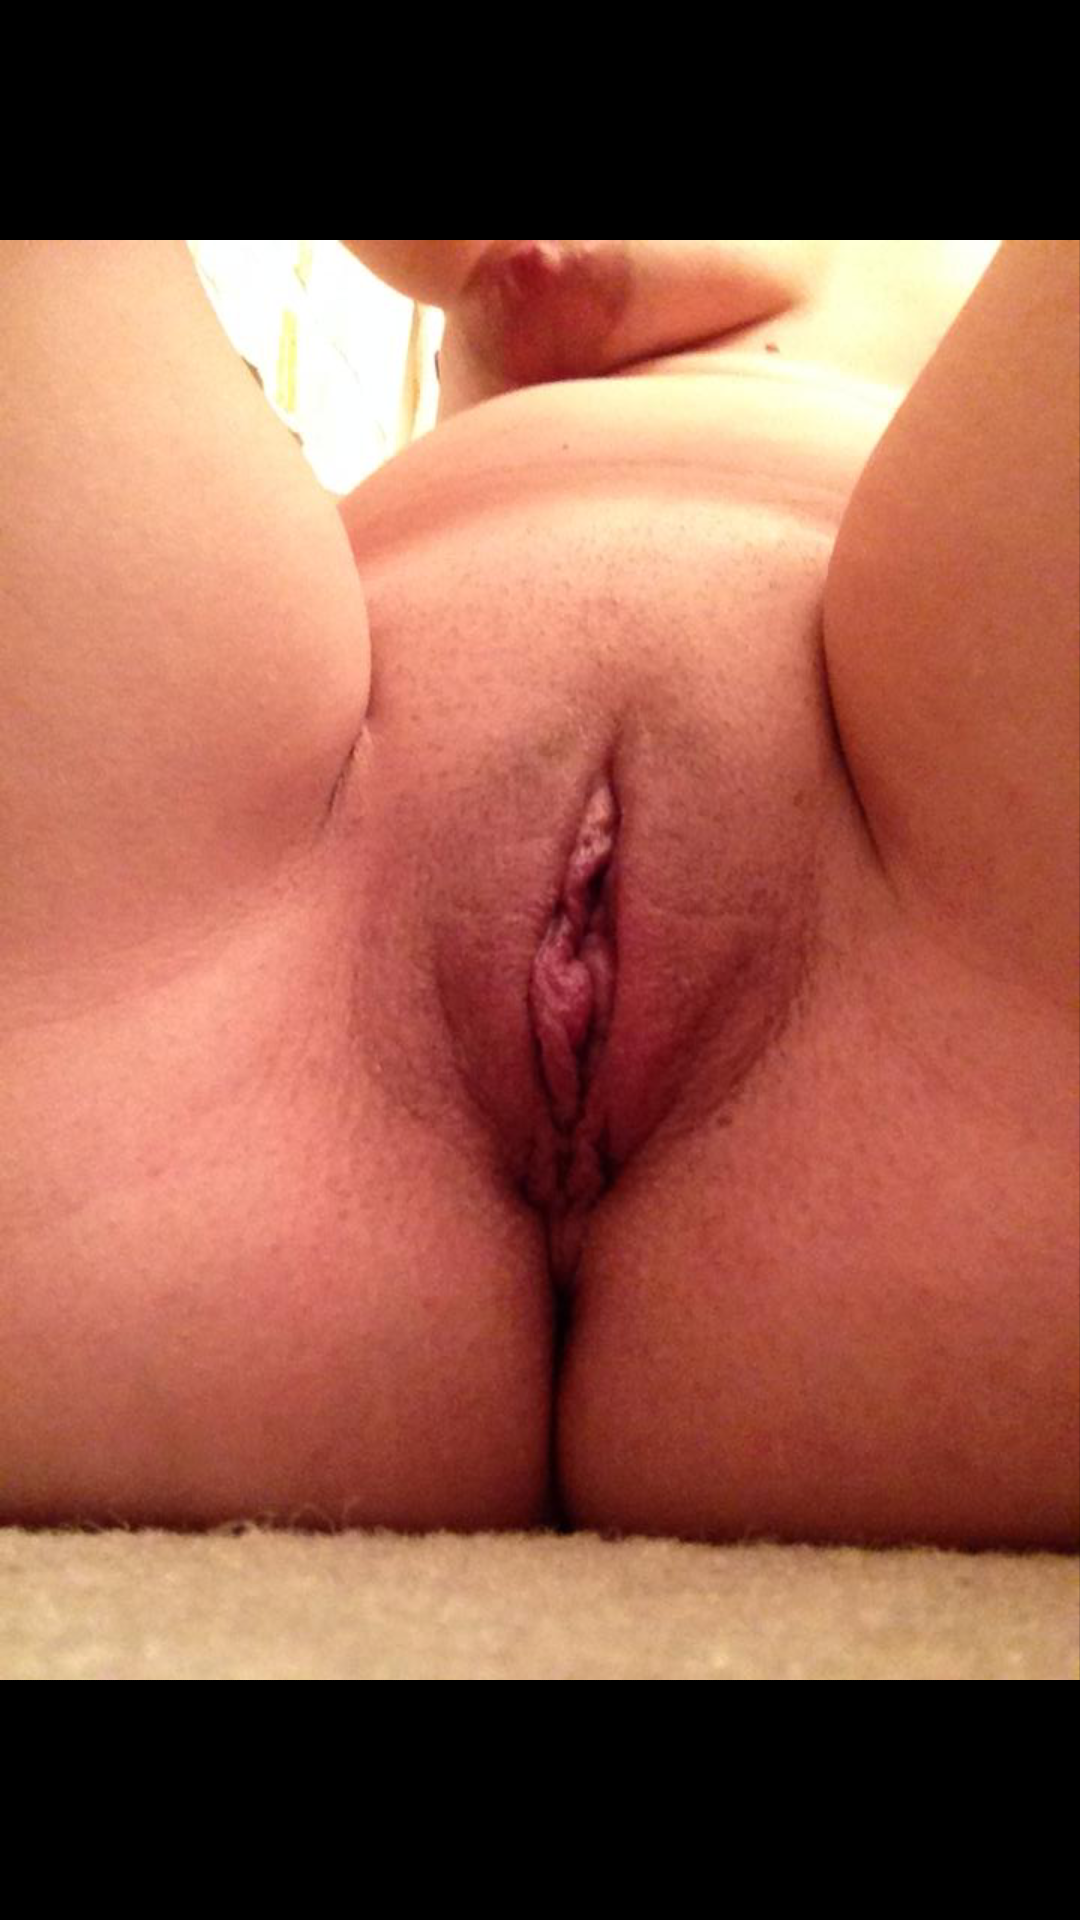 pussy up close pregnant